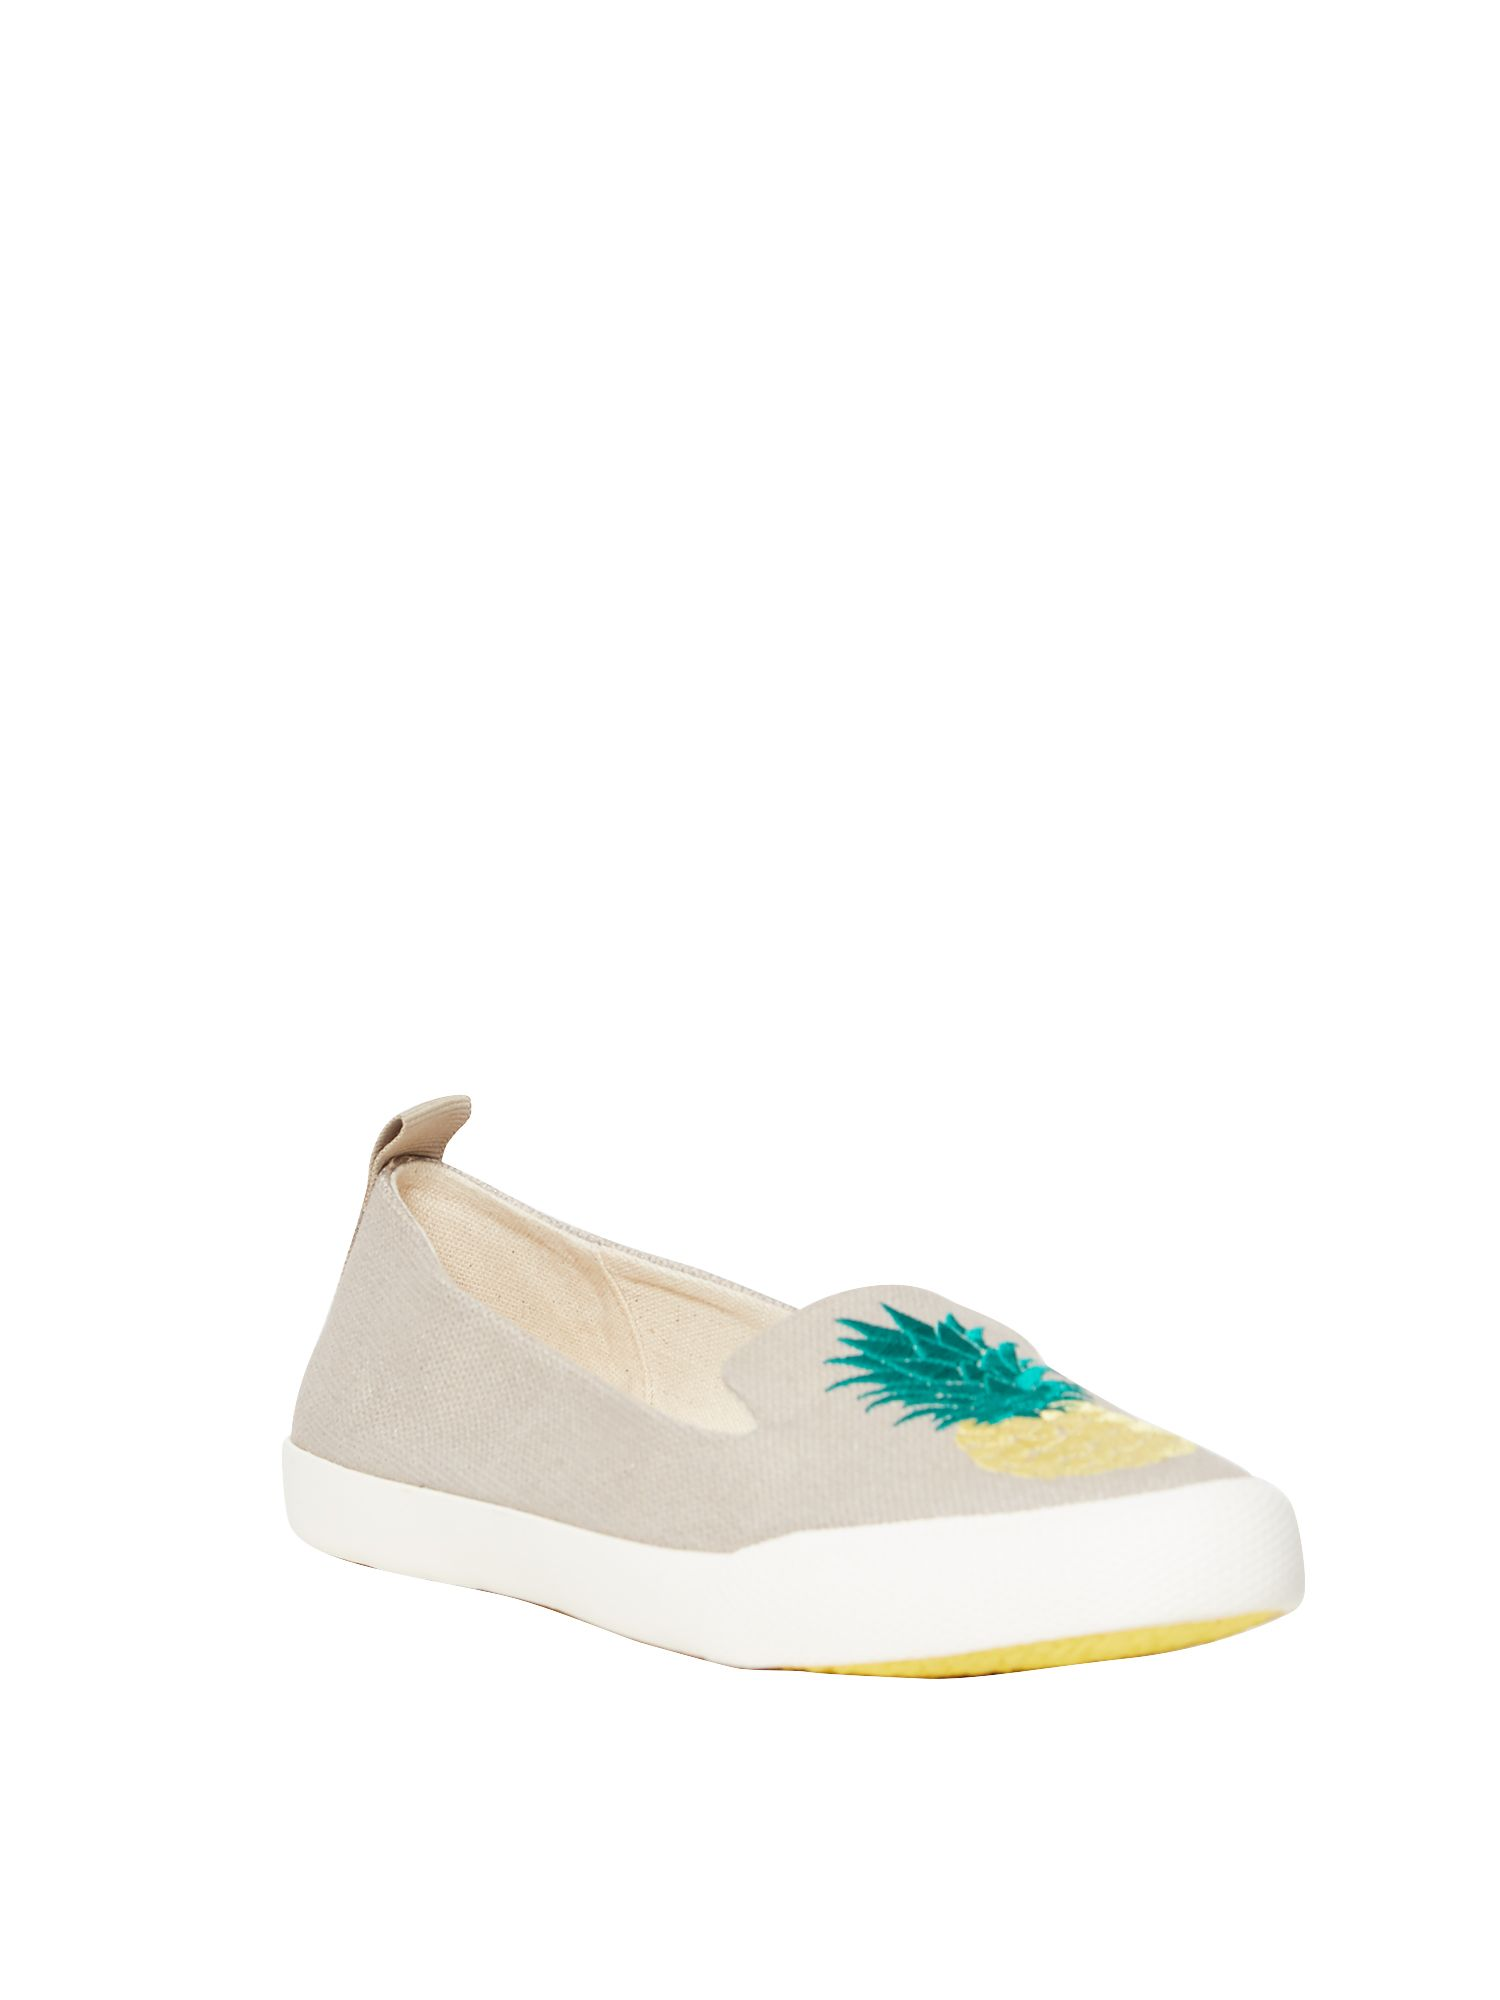 White Stuff Pineapple Pointed Slip On Pump, Natural